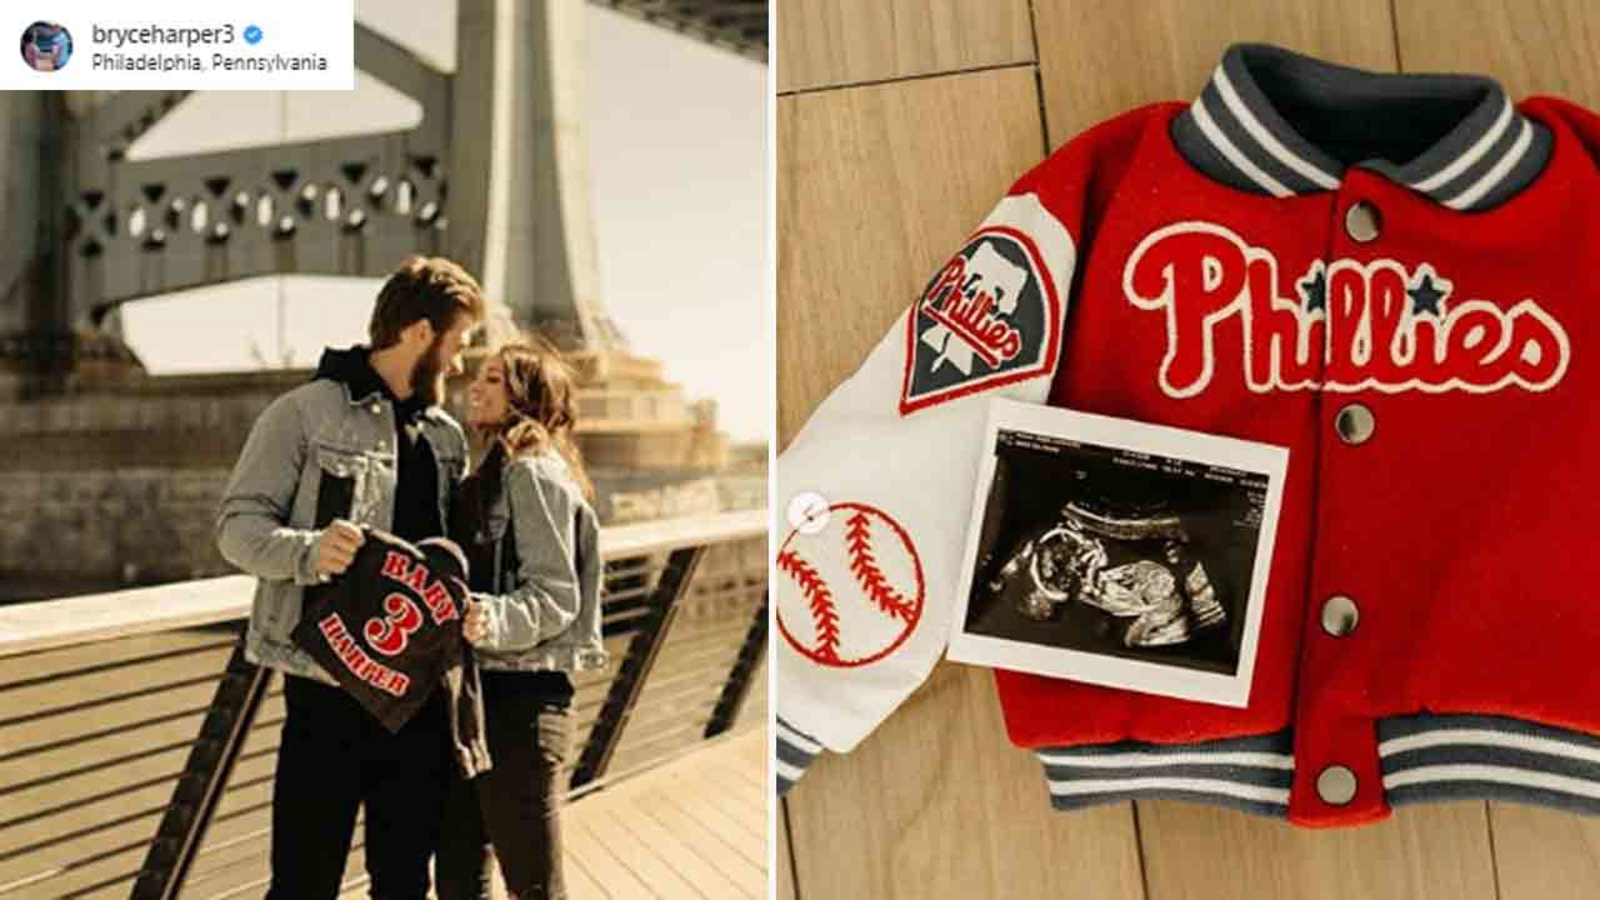 Philadelphia Phillies RF Bryce Harper out for paternity leave